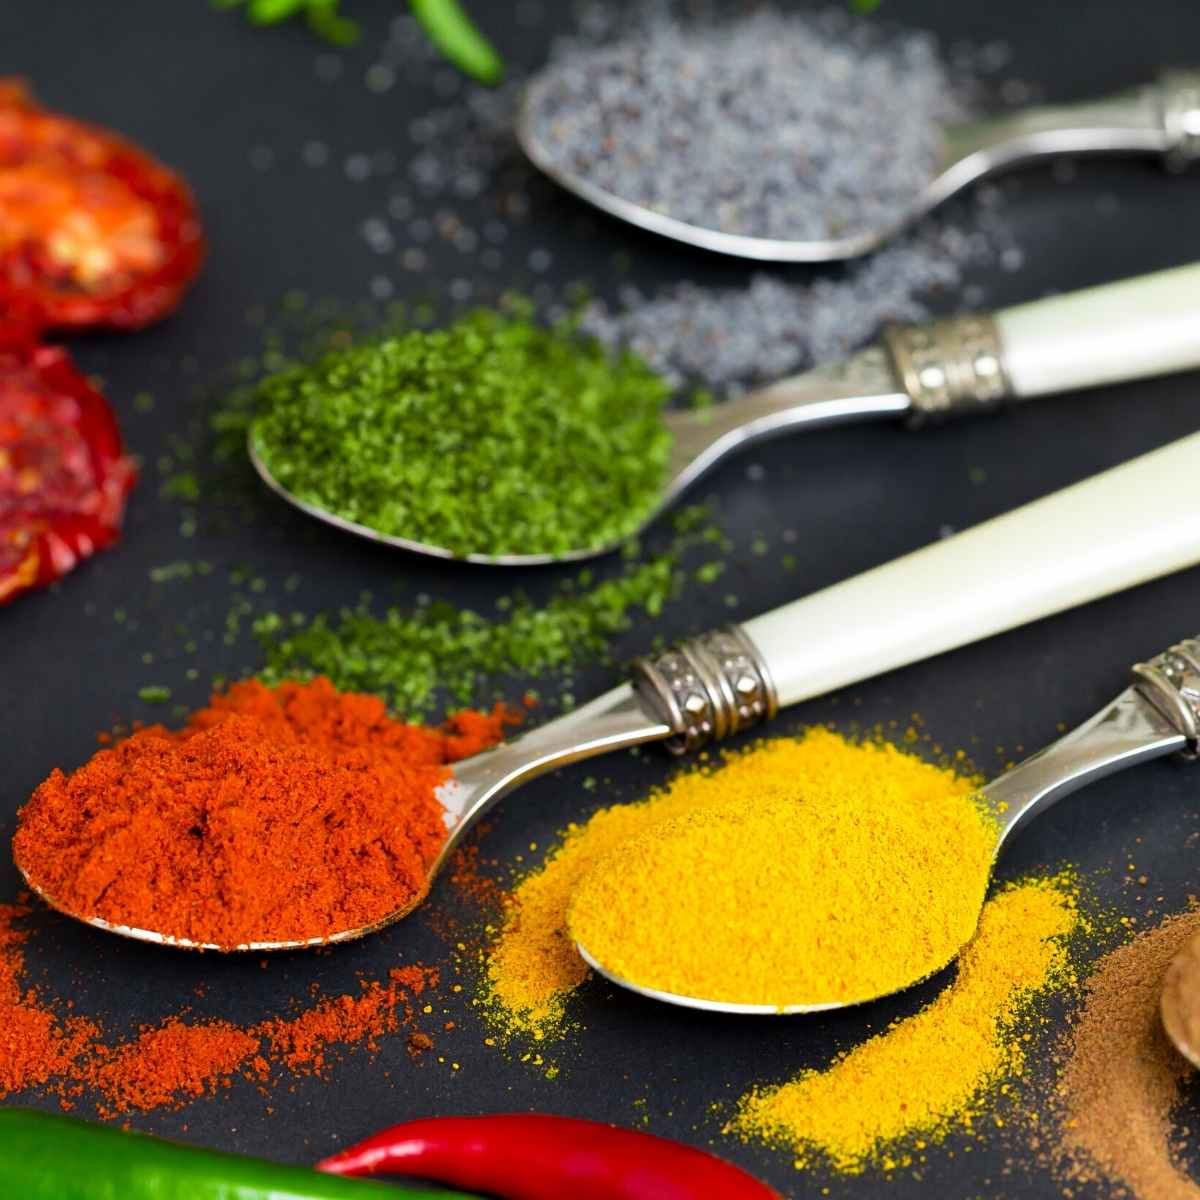 spoons filled with spices - 36 Herbs And Spices That Are Keto Friendly